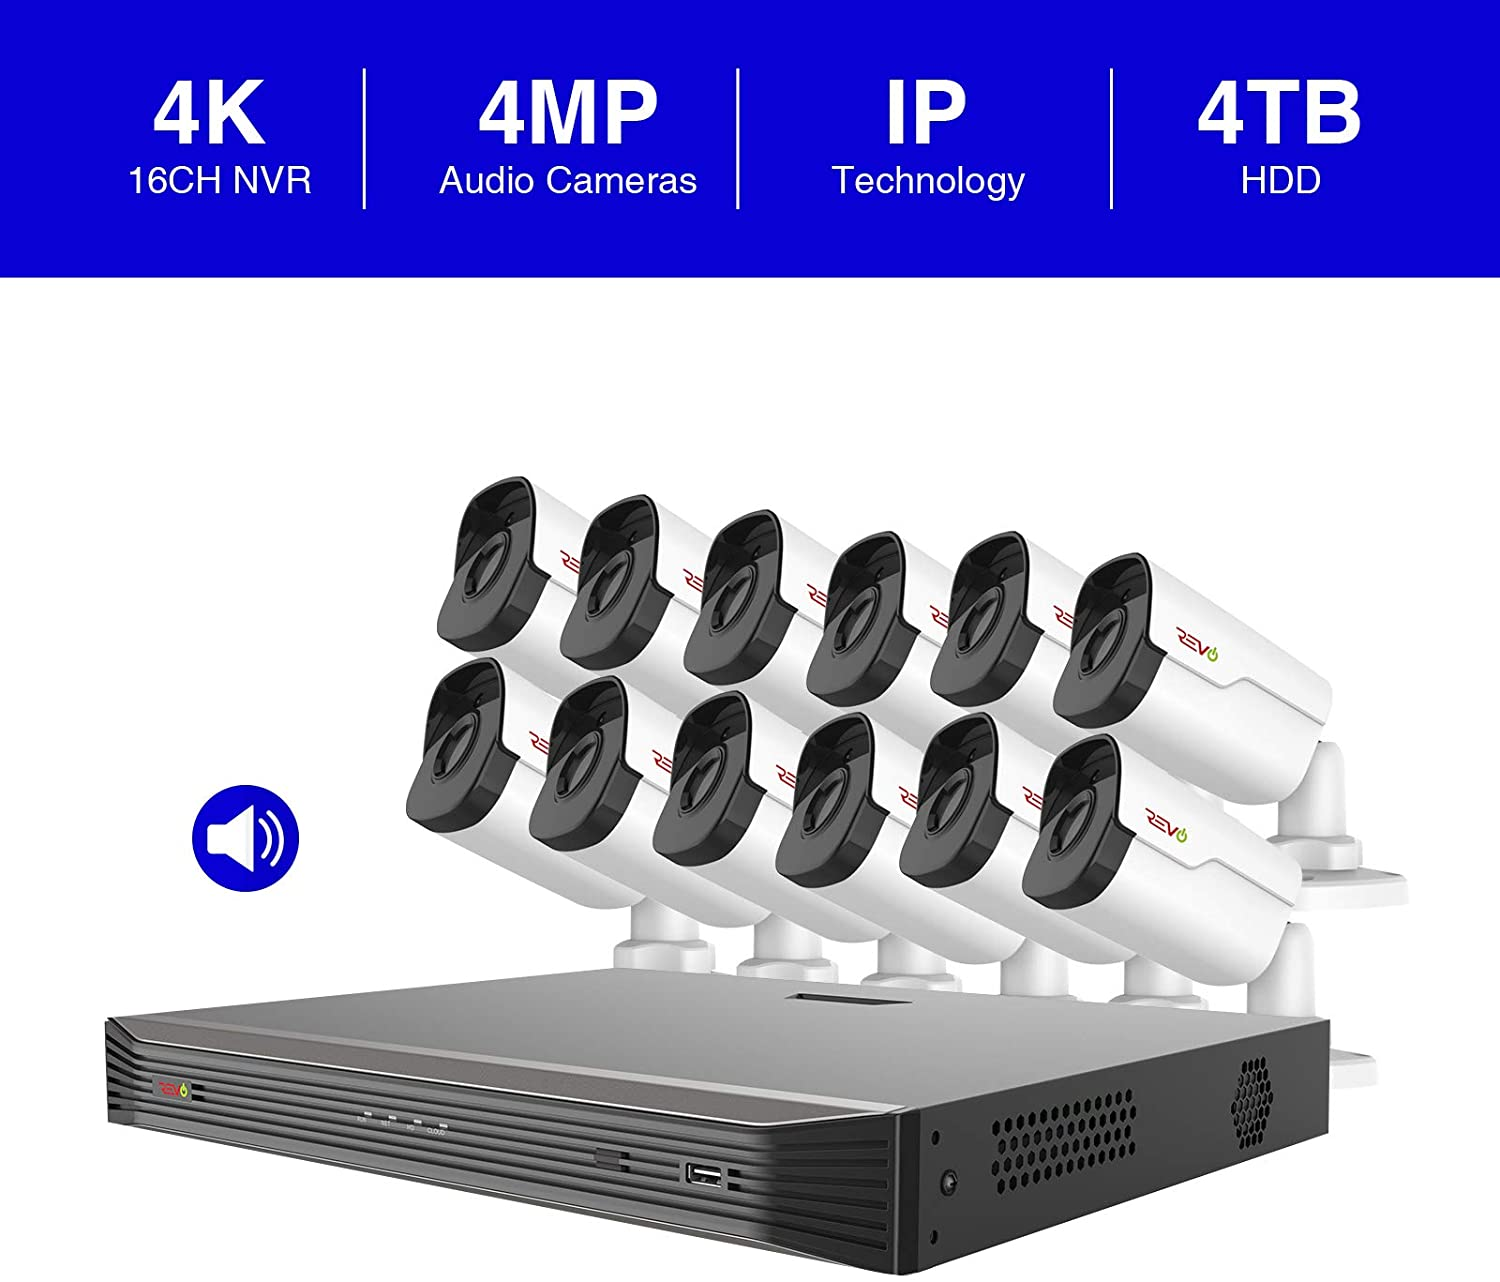 Revo America Ultra 16 Ch. 4TB HDD IP NVR Video Surveillance System, 12 x 4MP Indoor Outdoor IP Bullet Cameras – Remote Access via Smart Phone, Tablet, PC MAC